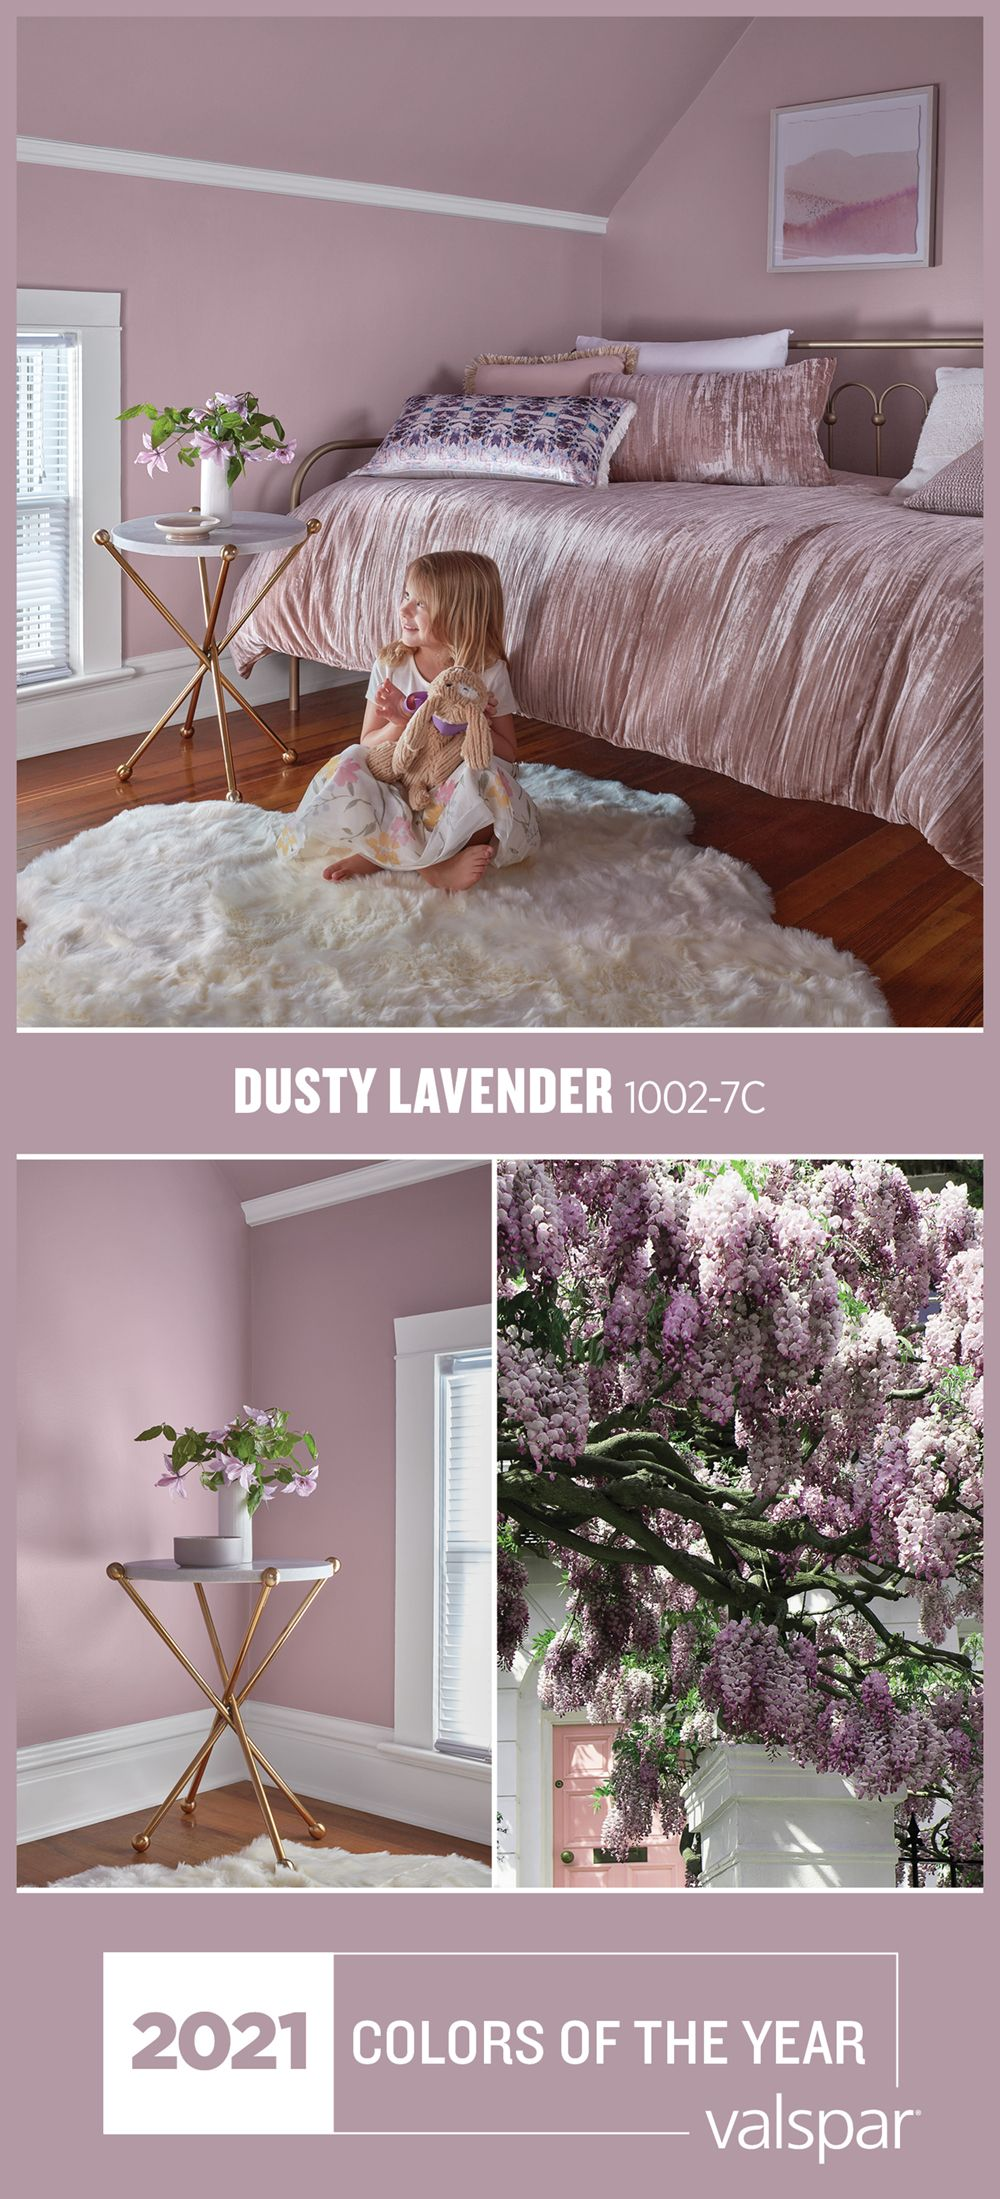 see all 2021 colors of the year in 2020 girl bedroom on valspar 2021 paint colors id=14616